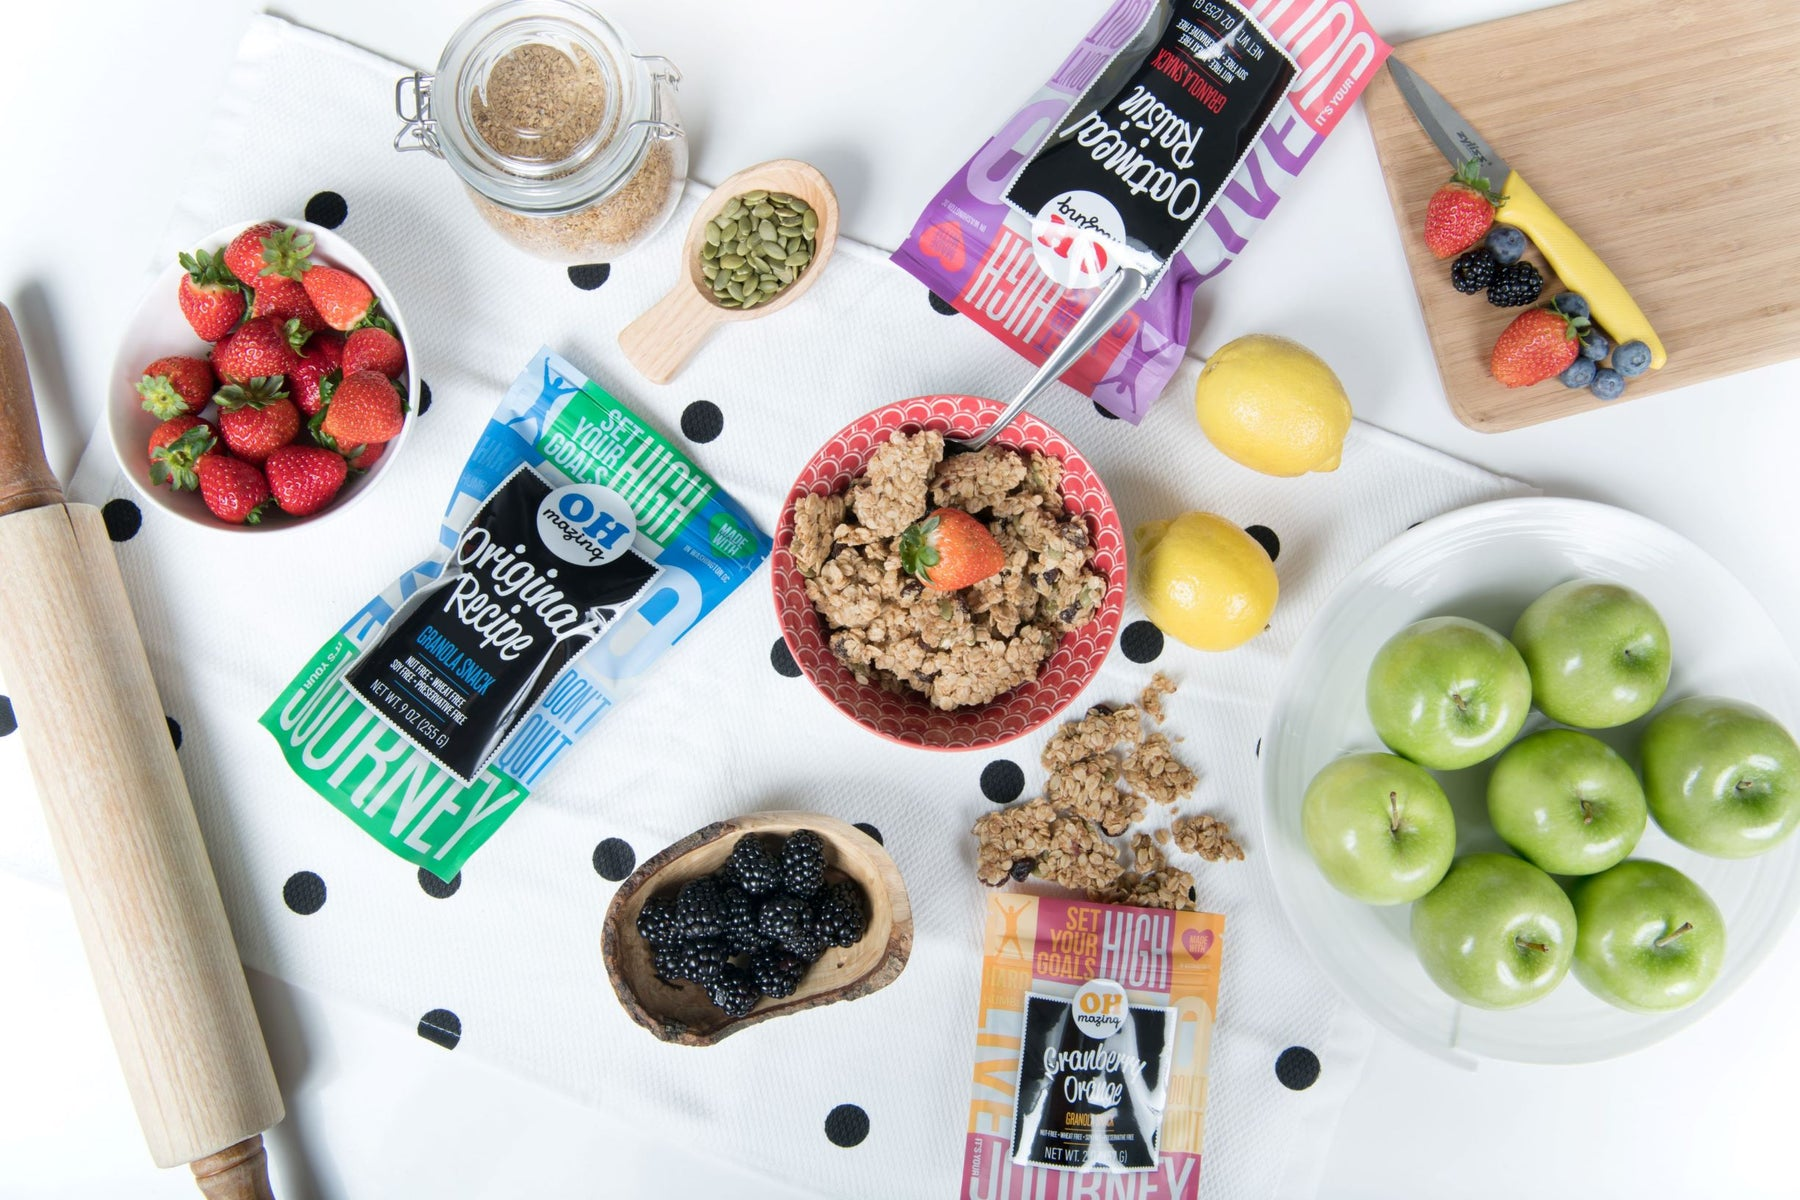 Oh-Mazing Snackable Granola